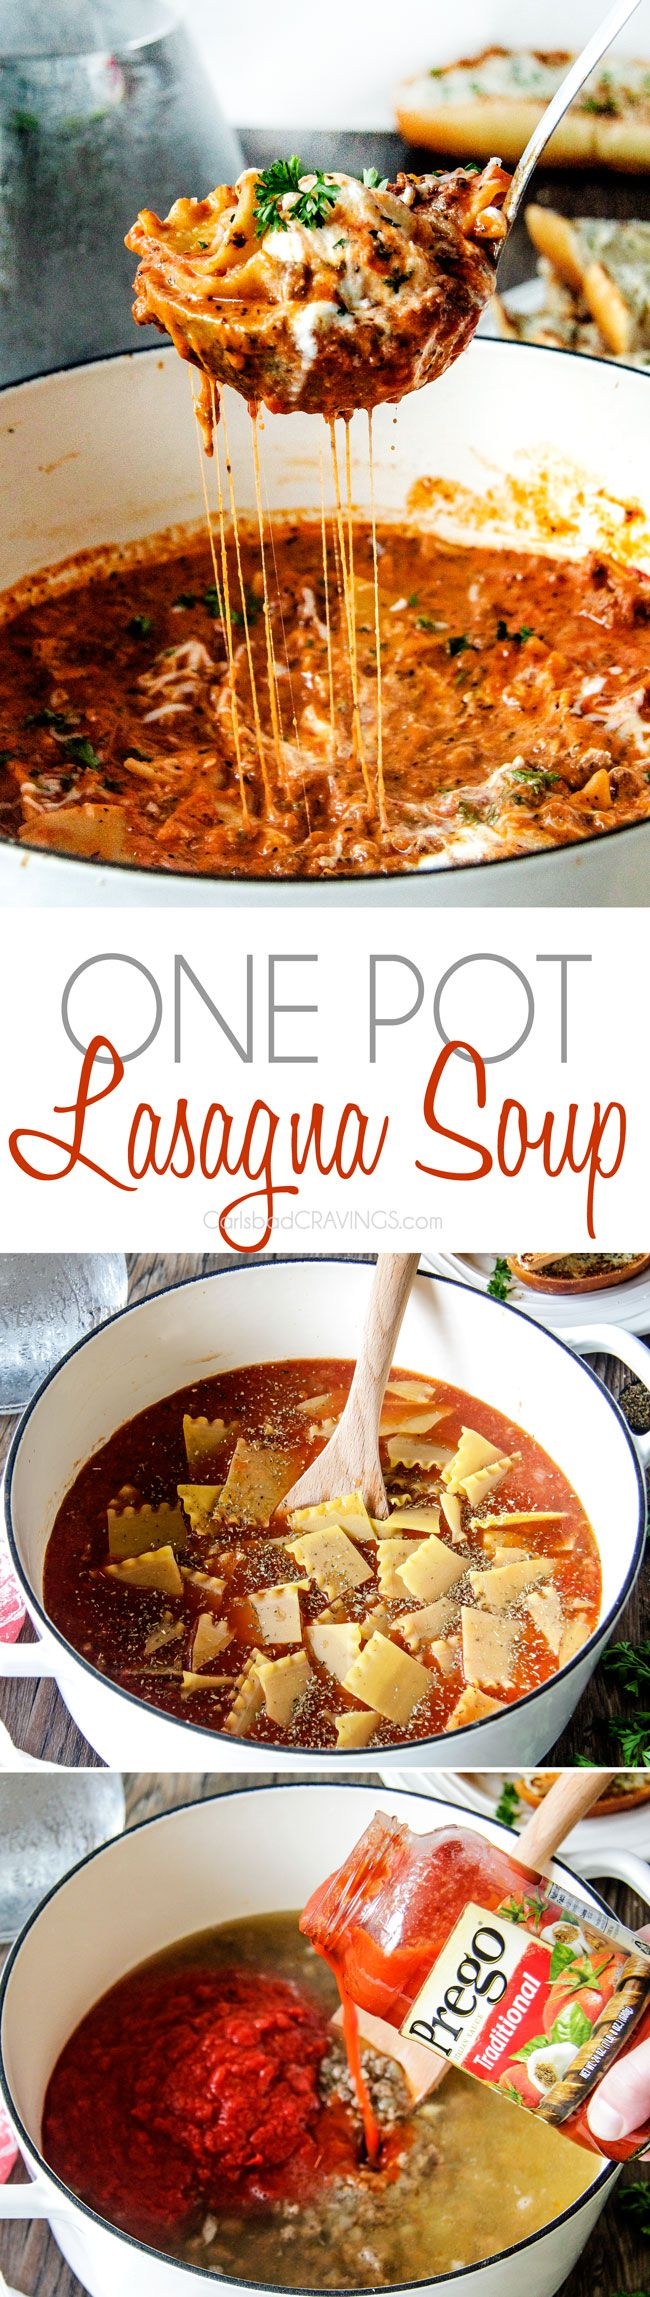 Easy One Pot Lasagna Soup tastes just like lasagna without all the layering or dishes! Simply brown your b